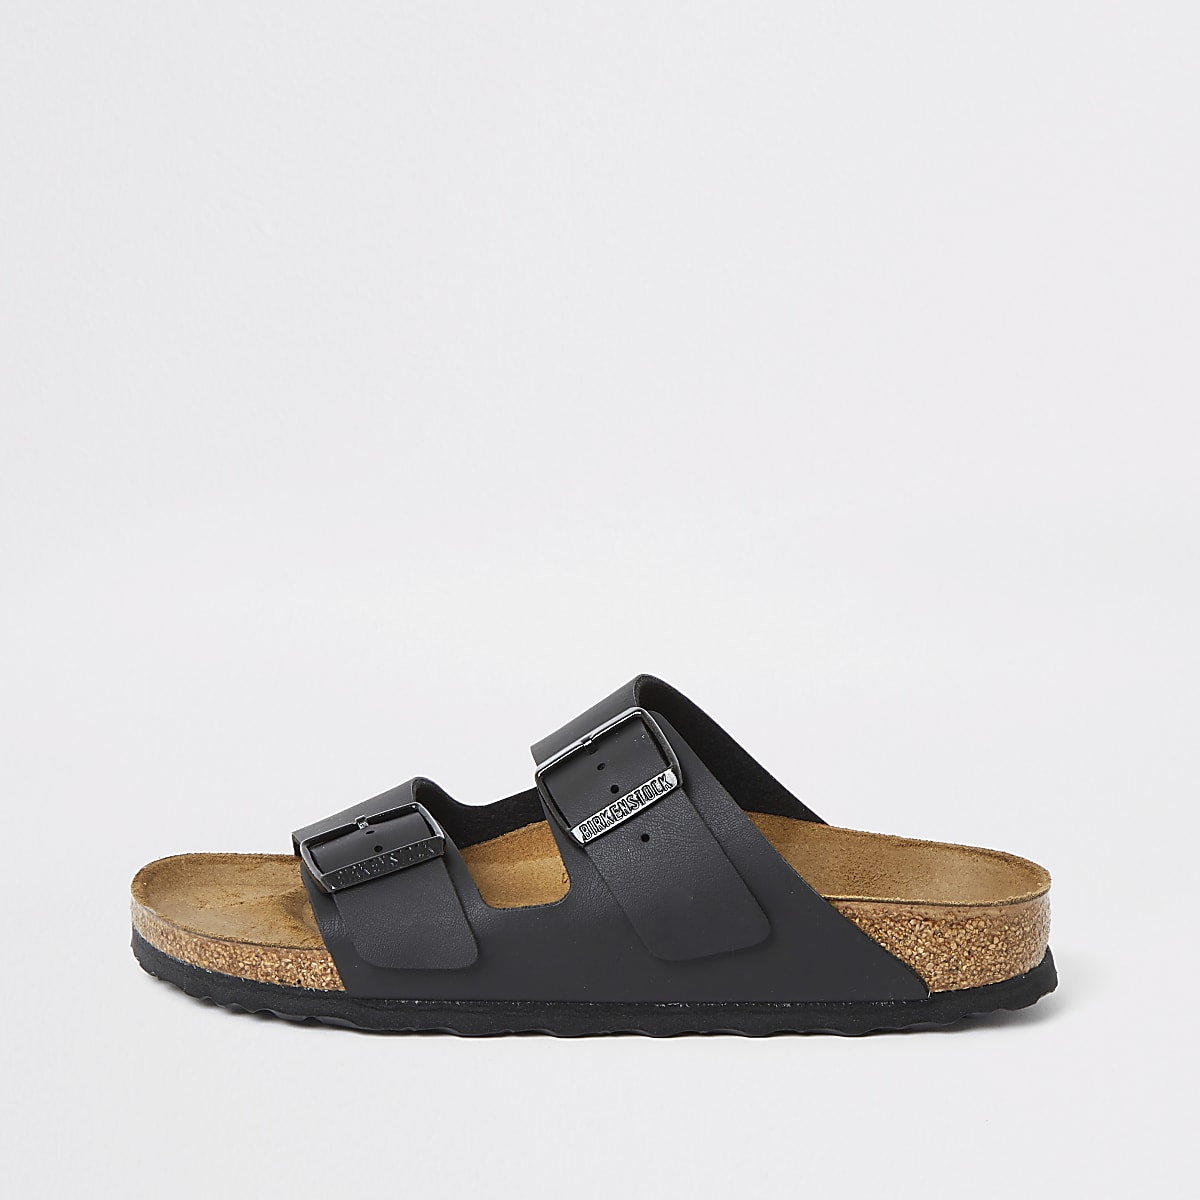 Birkenstock Arizona black two strap sandals